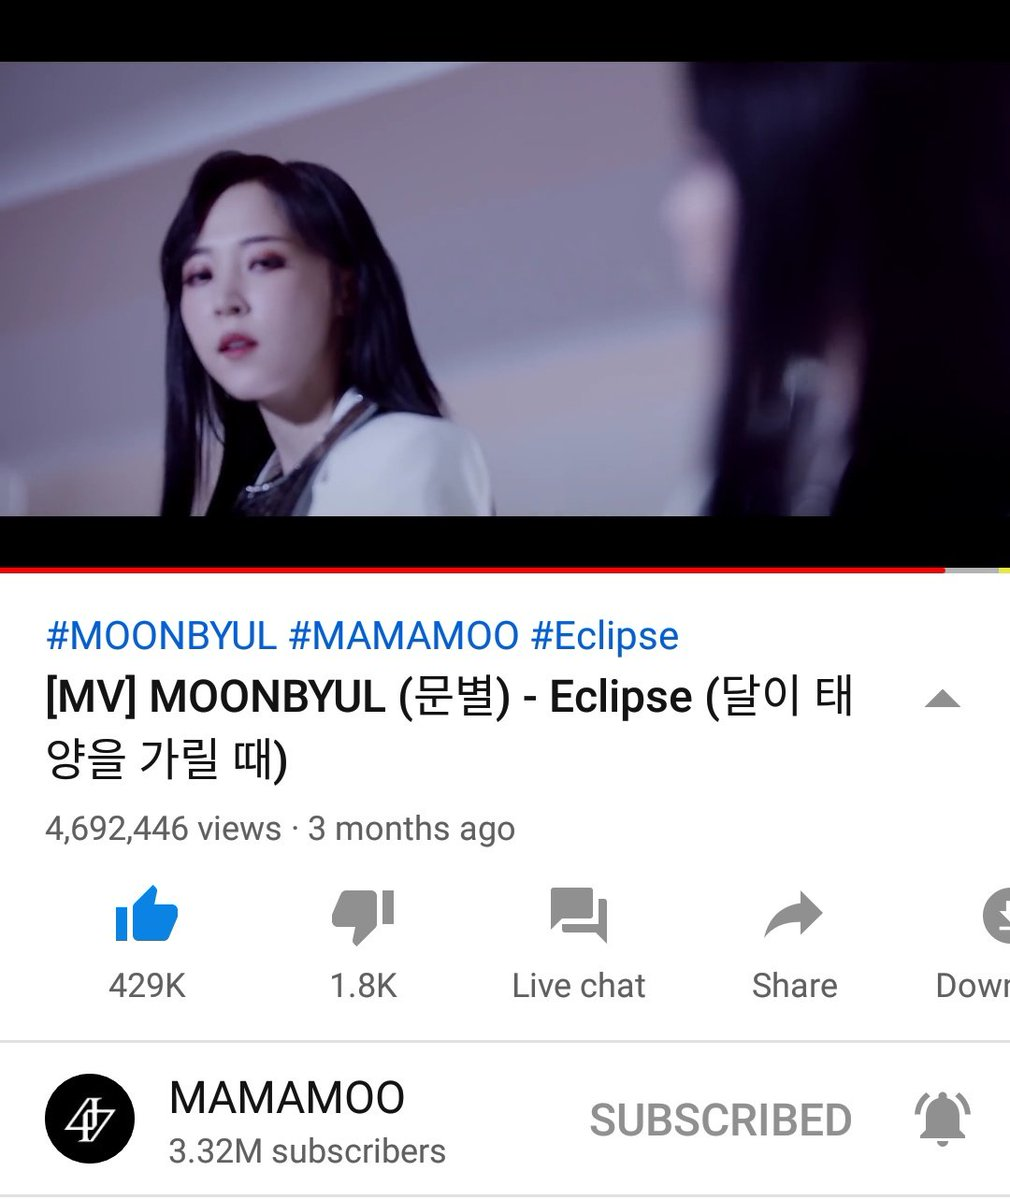 Let's get Eclipse to 5M while waiting for #MOONBYUL's repackaged album and online concert!   ▶📽 https://t.co/vJNabbN5xg  #문별 #마마무 #文星伊 #ムンビョル @RBW_MAMAMOO #mamamoo #EclipseMoonbyul https://t.co/No9r9UkFBJ